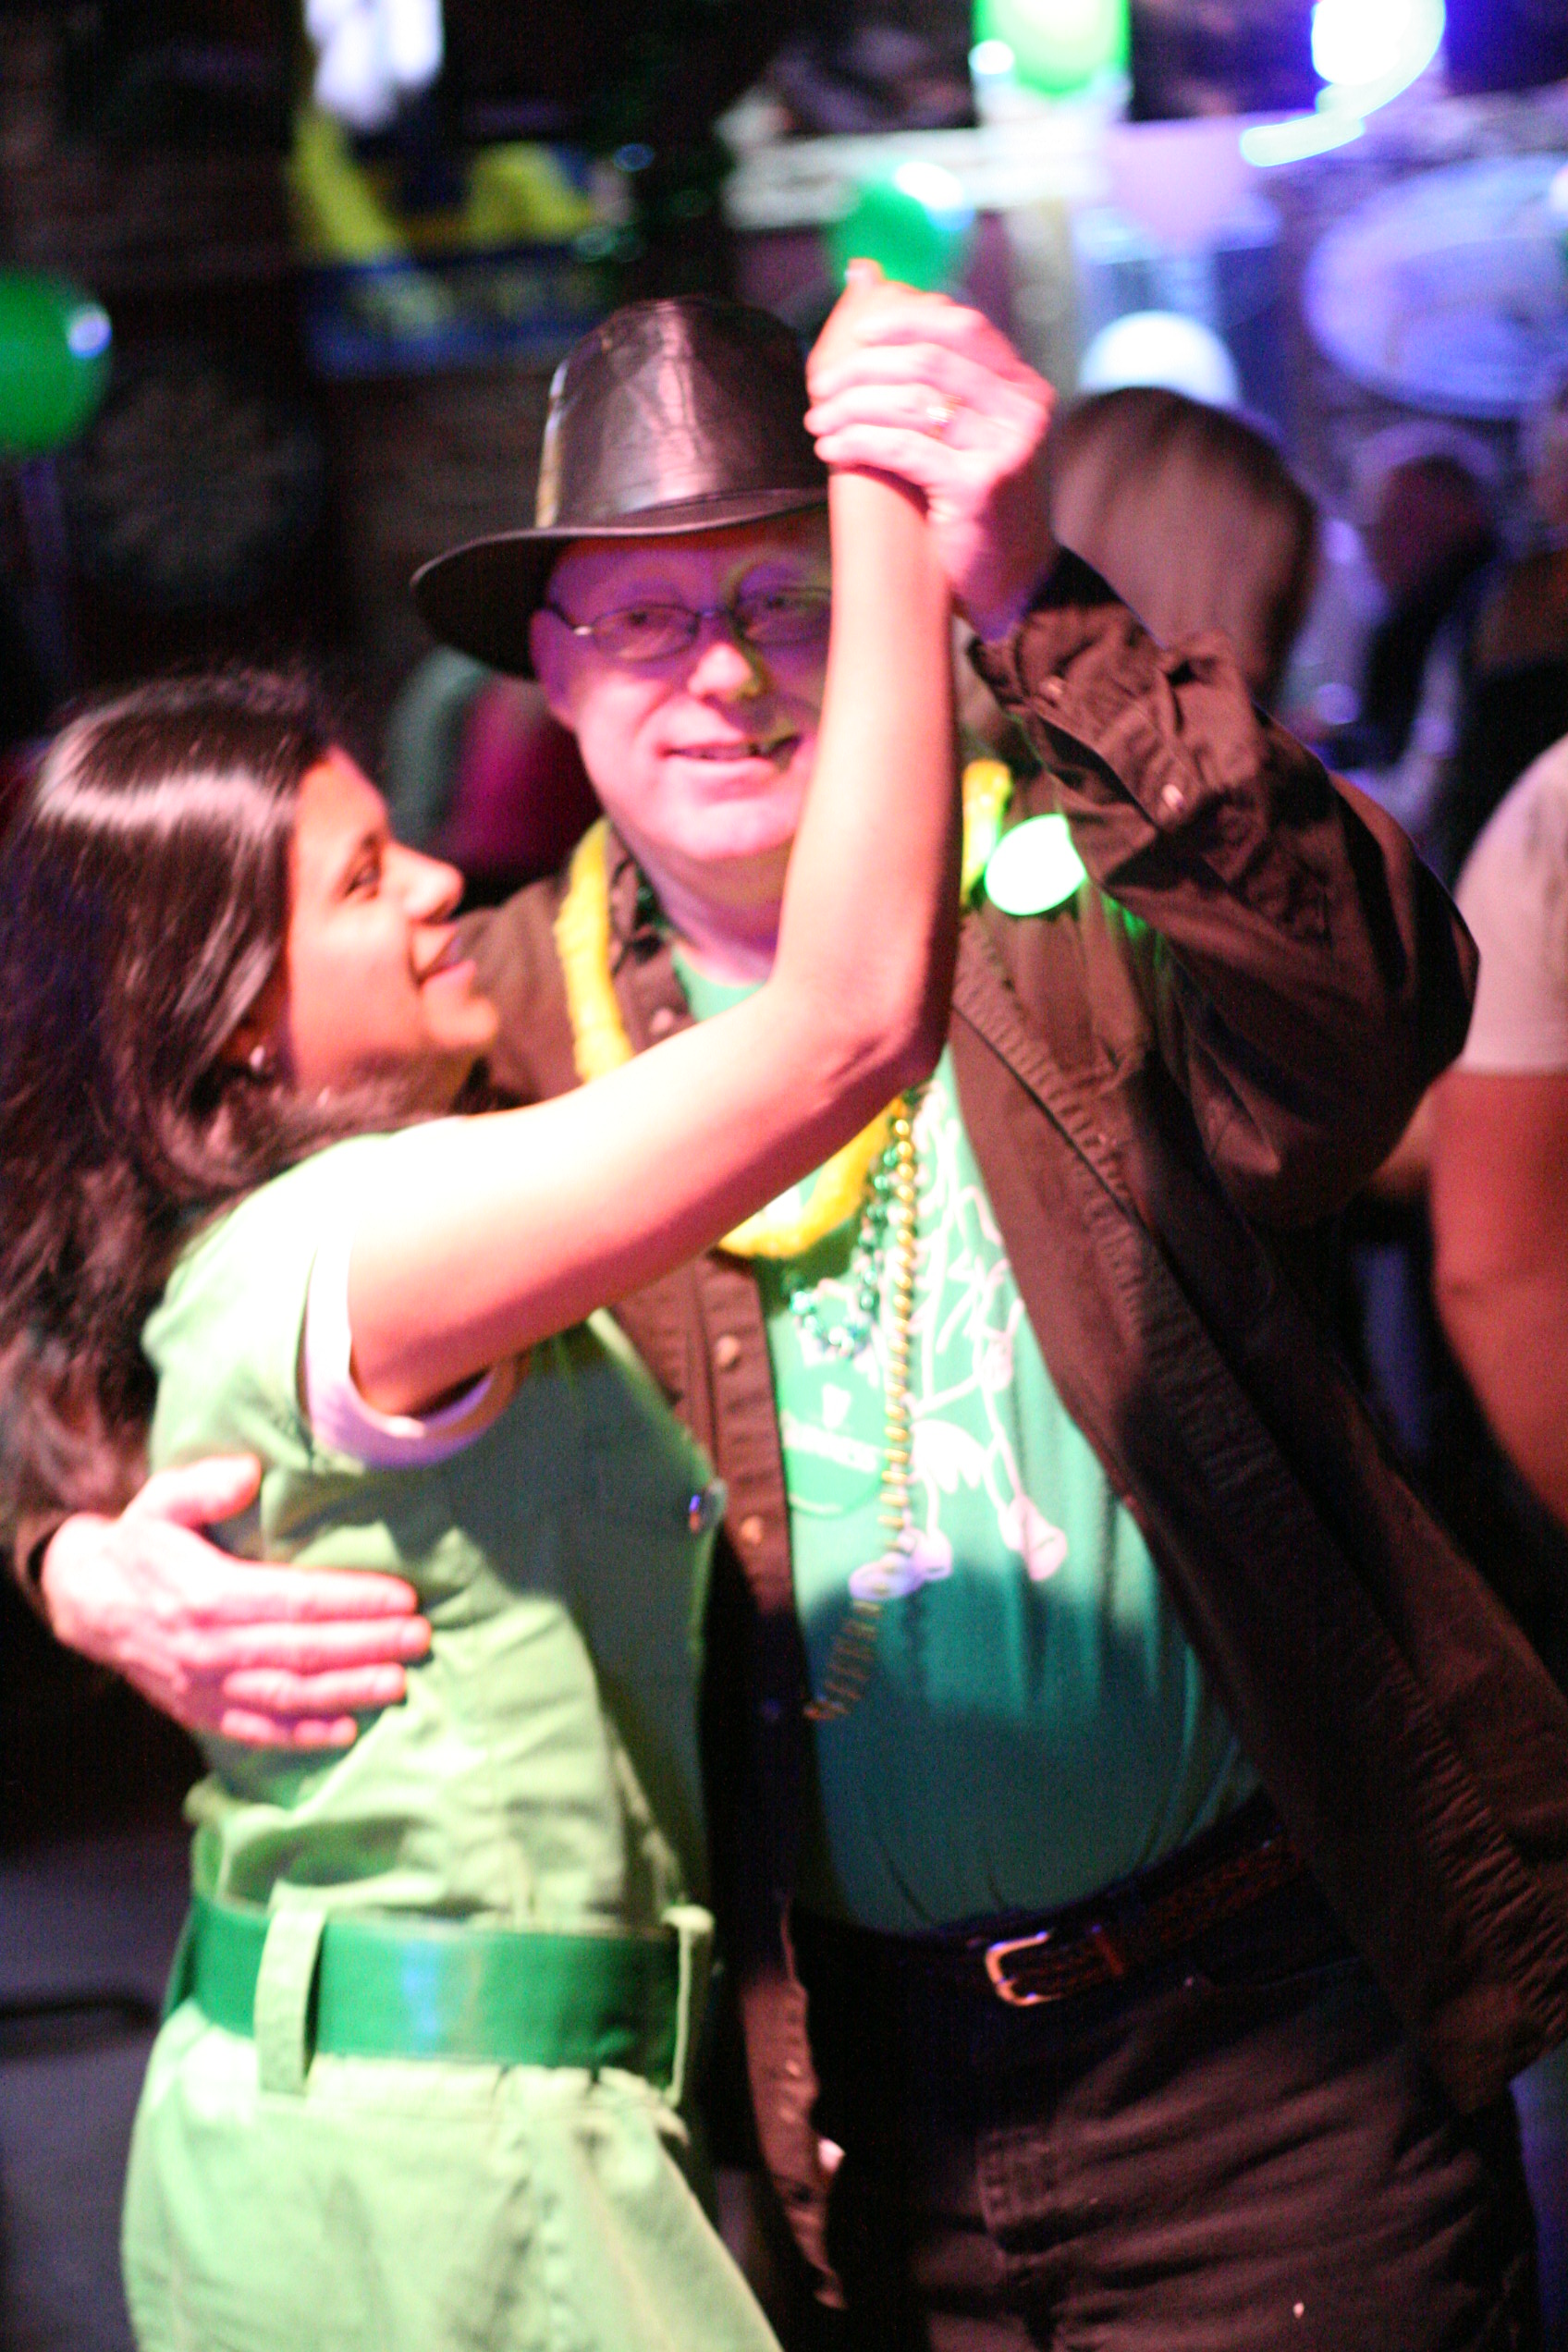 St. Patrick's Day dancing